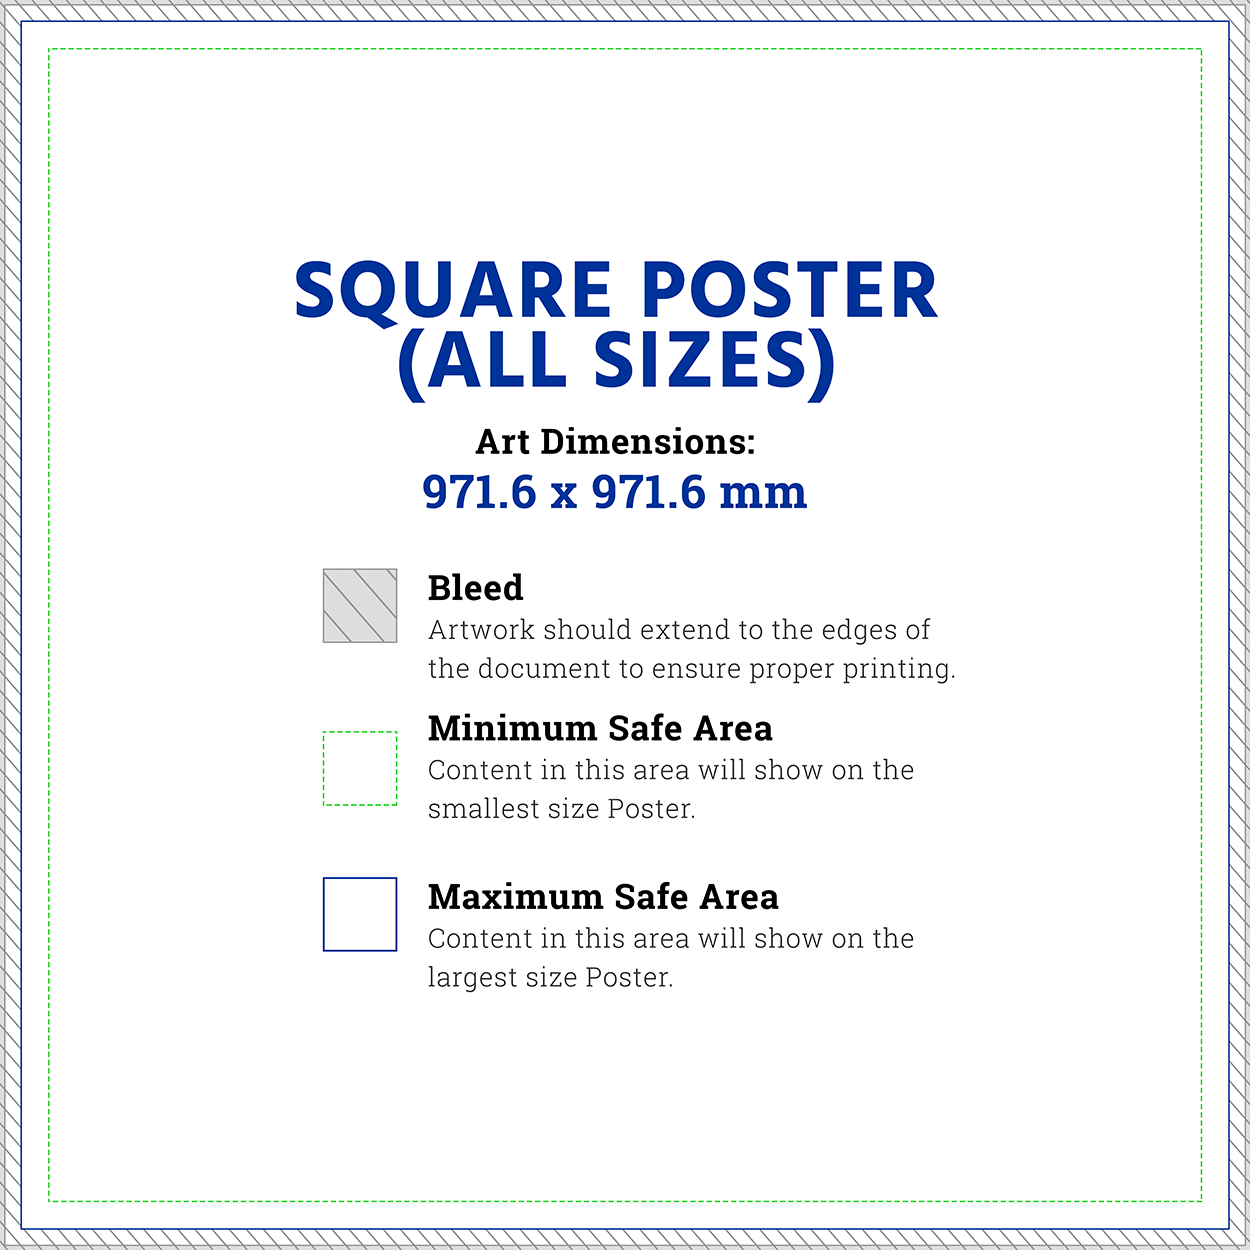 possq_poster_square_arttemplate.png